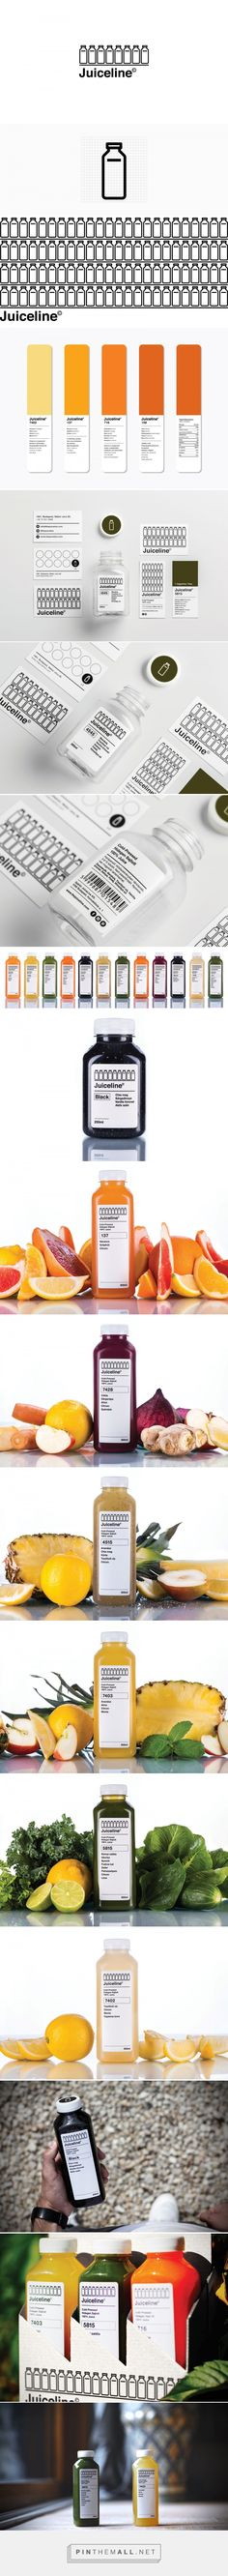 Juiceline packaging design by Kissmiklos (Hungary)…